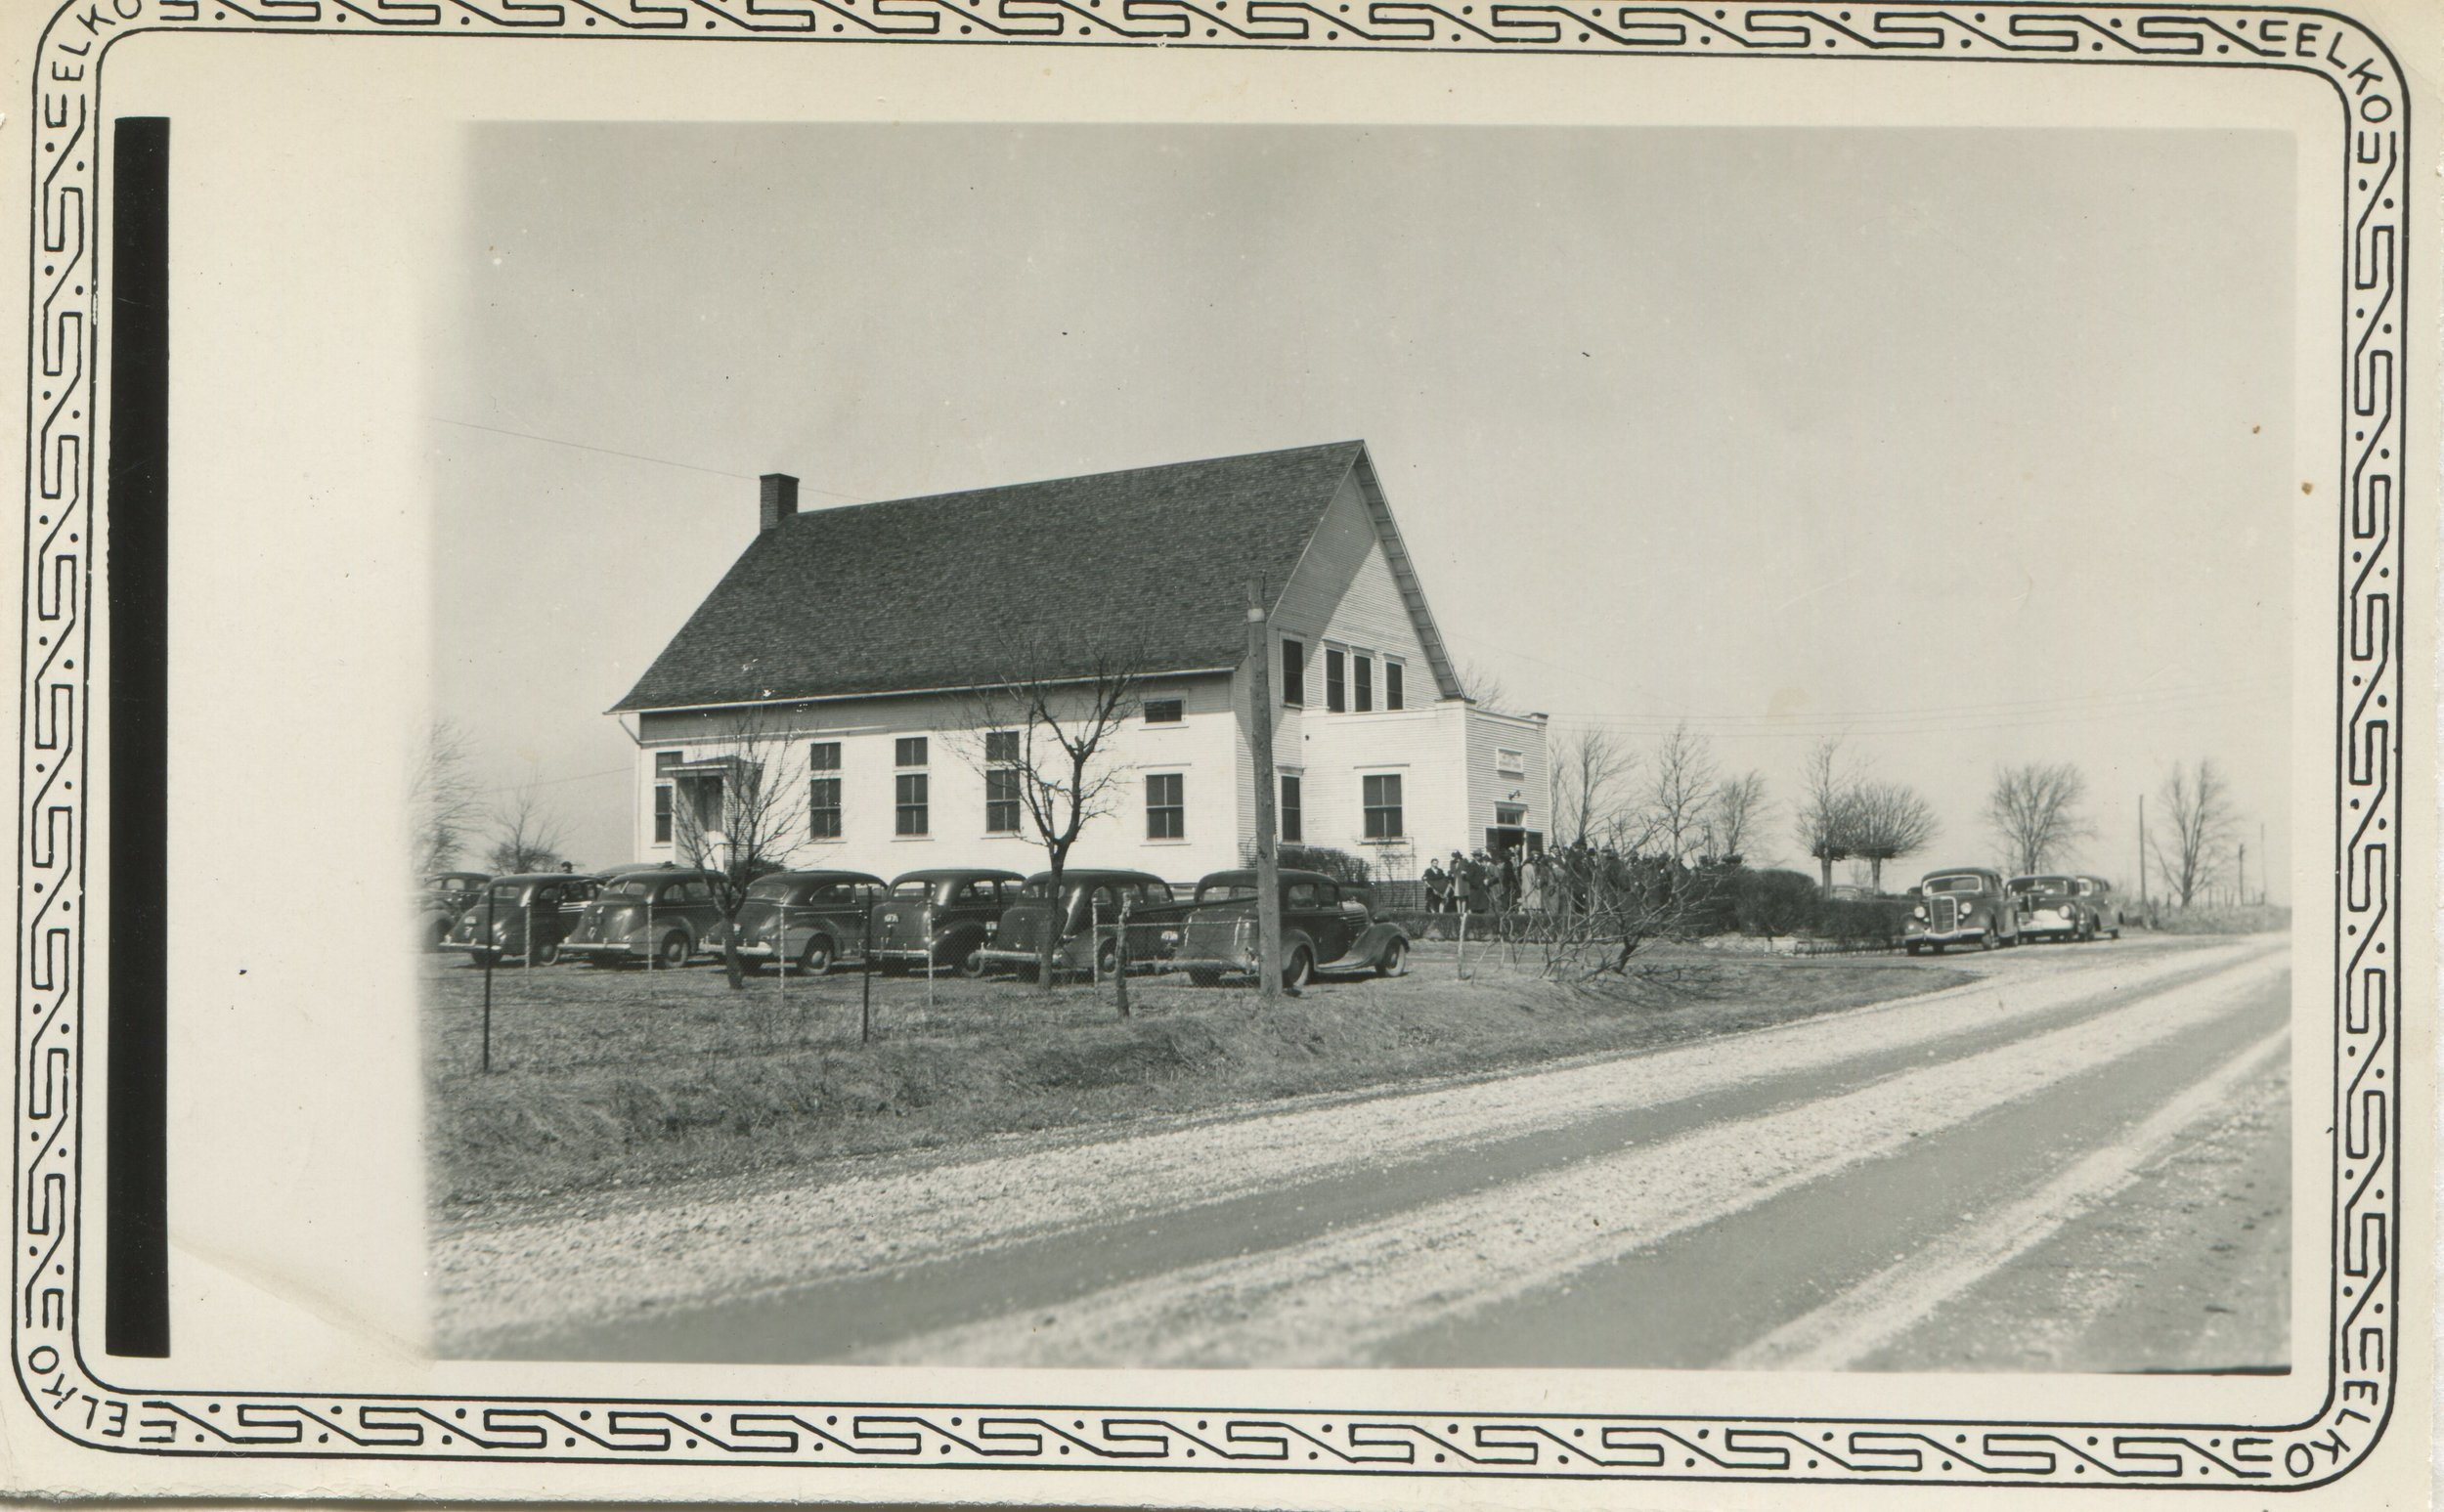 Metamora Mennonite, about 1938